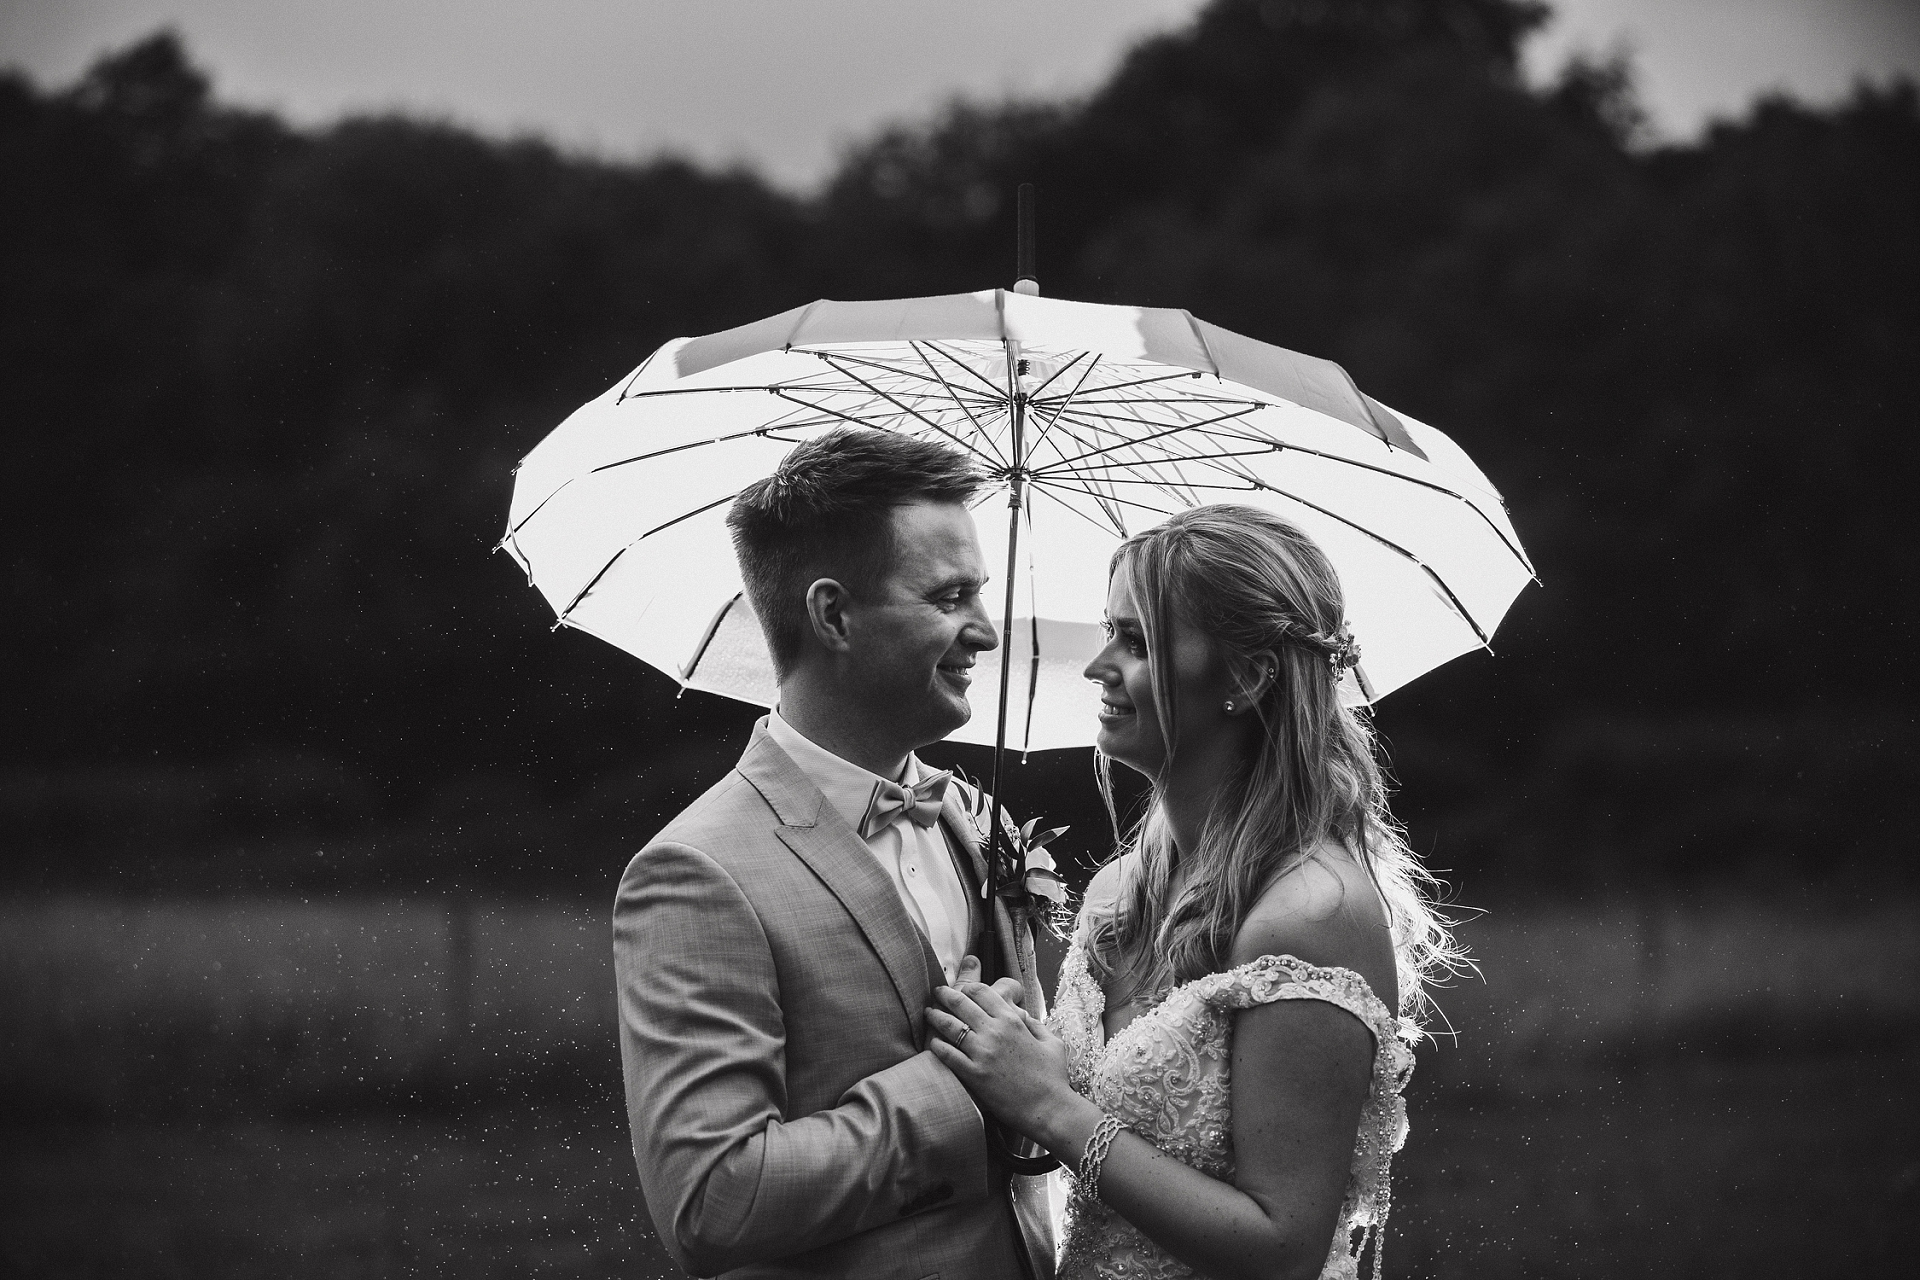 Bride and groom evening portrait in the rain